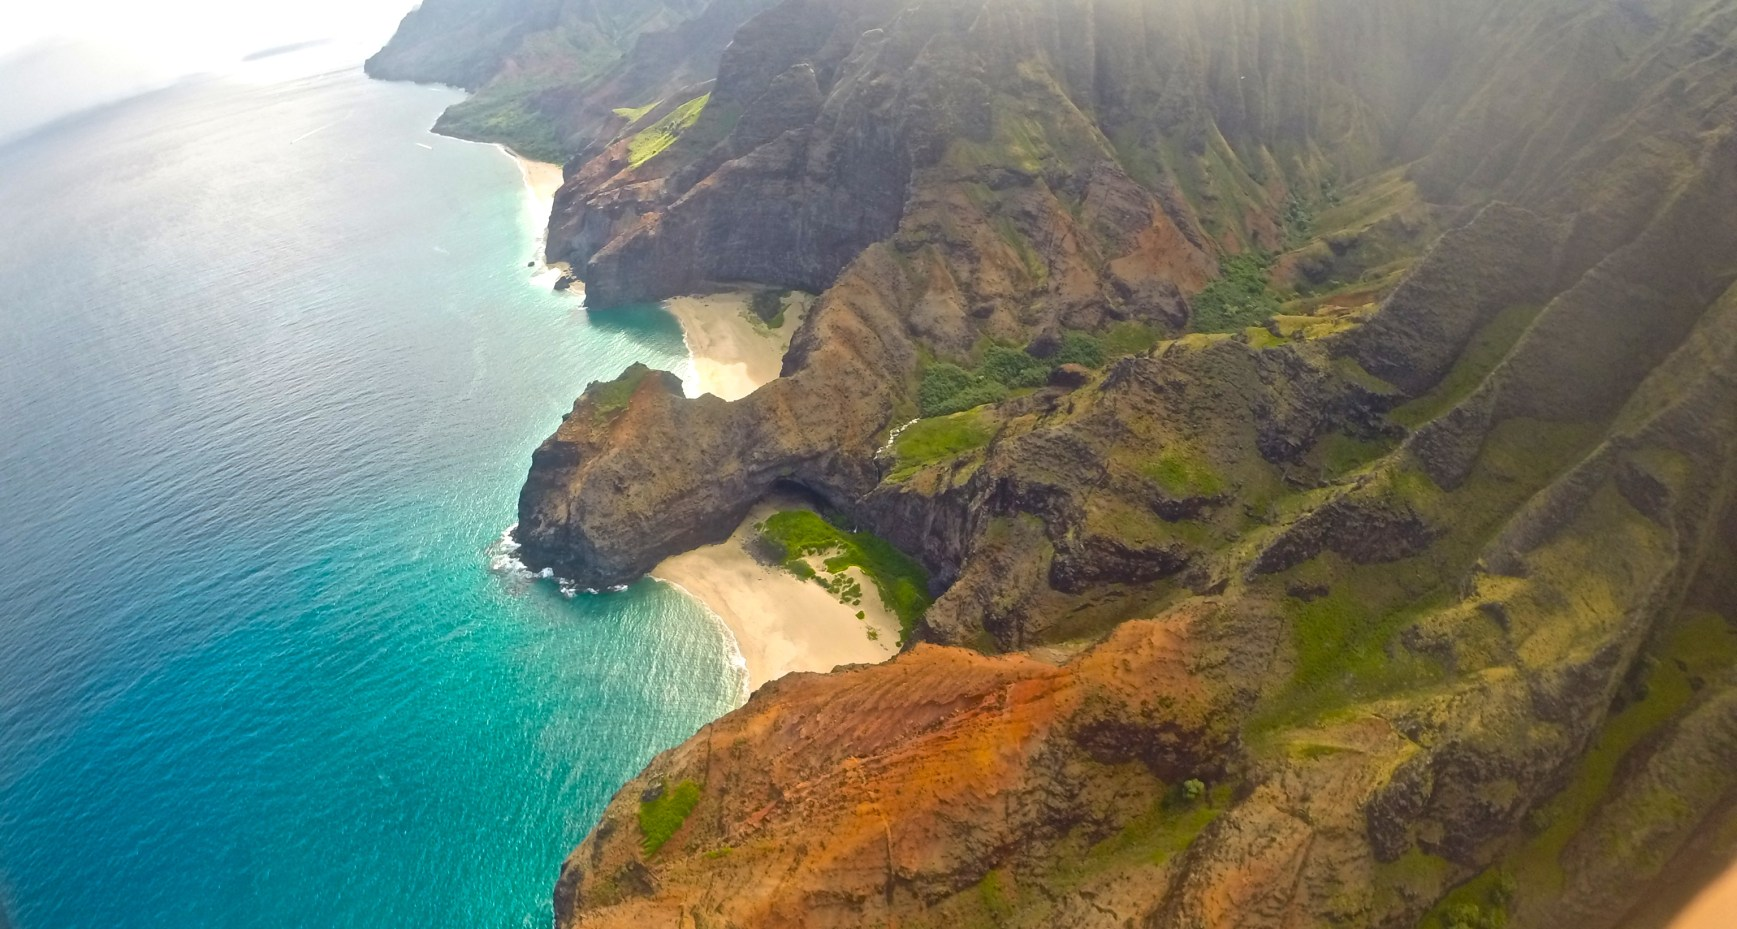 World of Hyatt in Hawaii, how to book Hawaii hotels with Chase Ultimate Rewards points